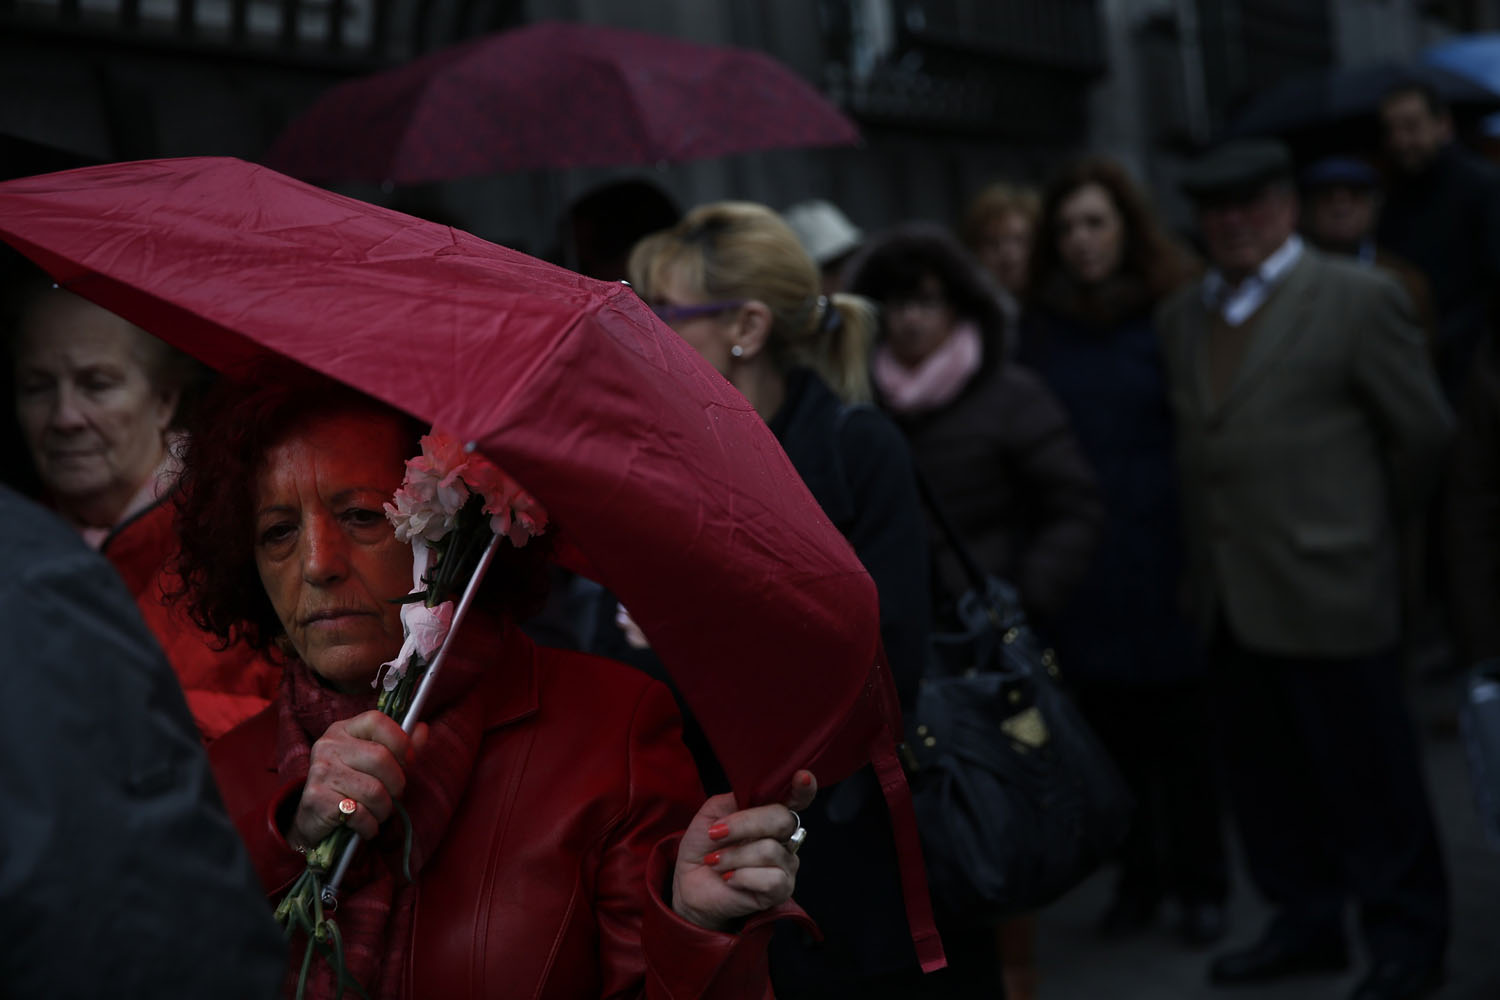 Mar. 24, 2014. People line up to pay their respects to Spain's former Prime Minister Adolfo Suarez during his wake at the Spanish parliament in Madrid. Suarez steered Spain through one of the most turbulent periods in its political history.